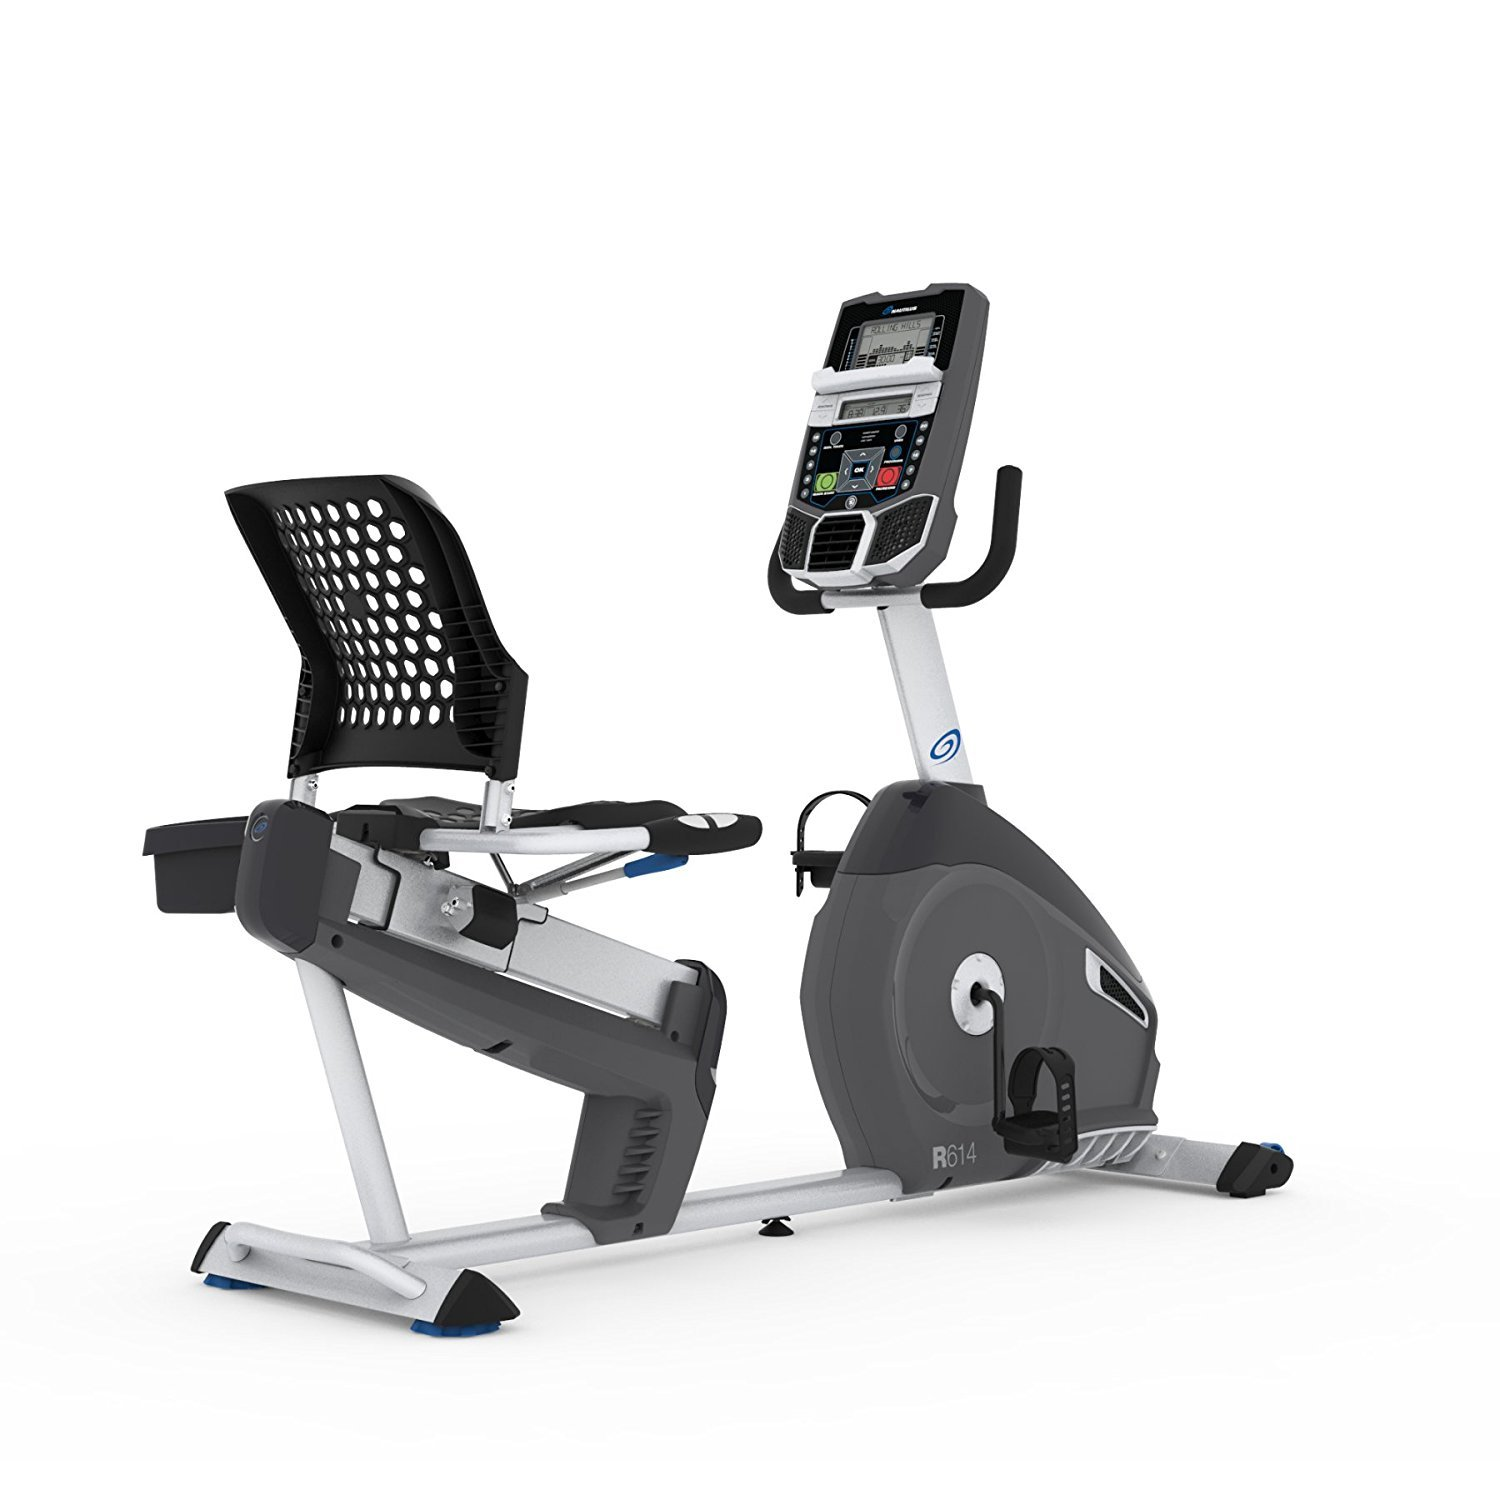 Nautilus R614 Recumbent Bike [並行輸入品]